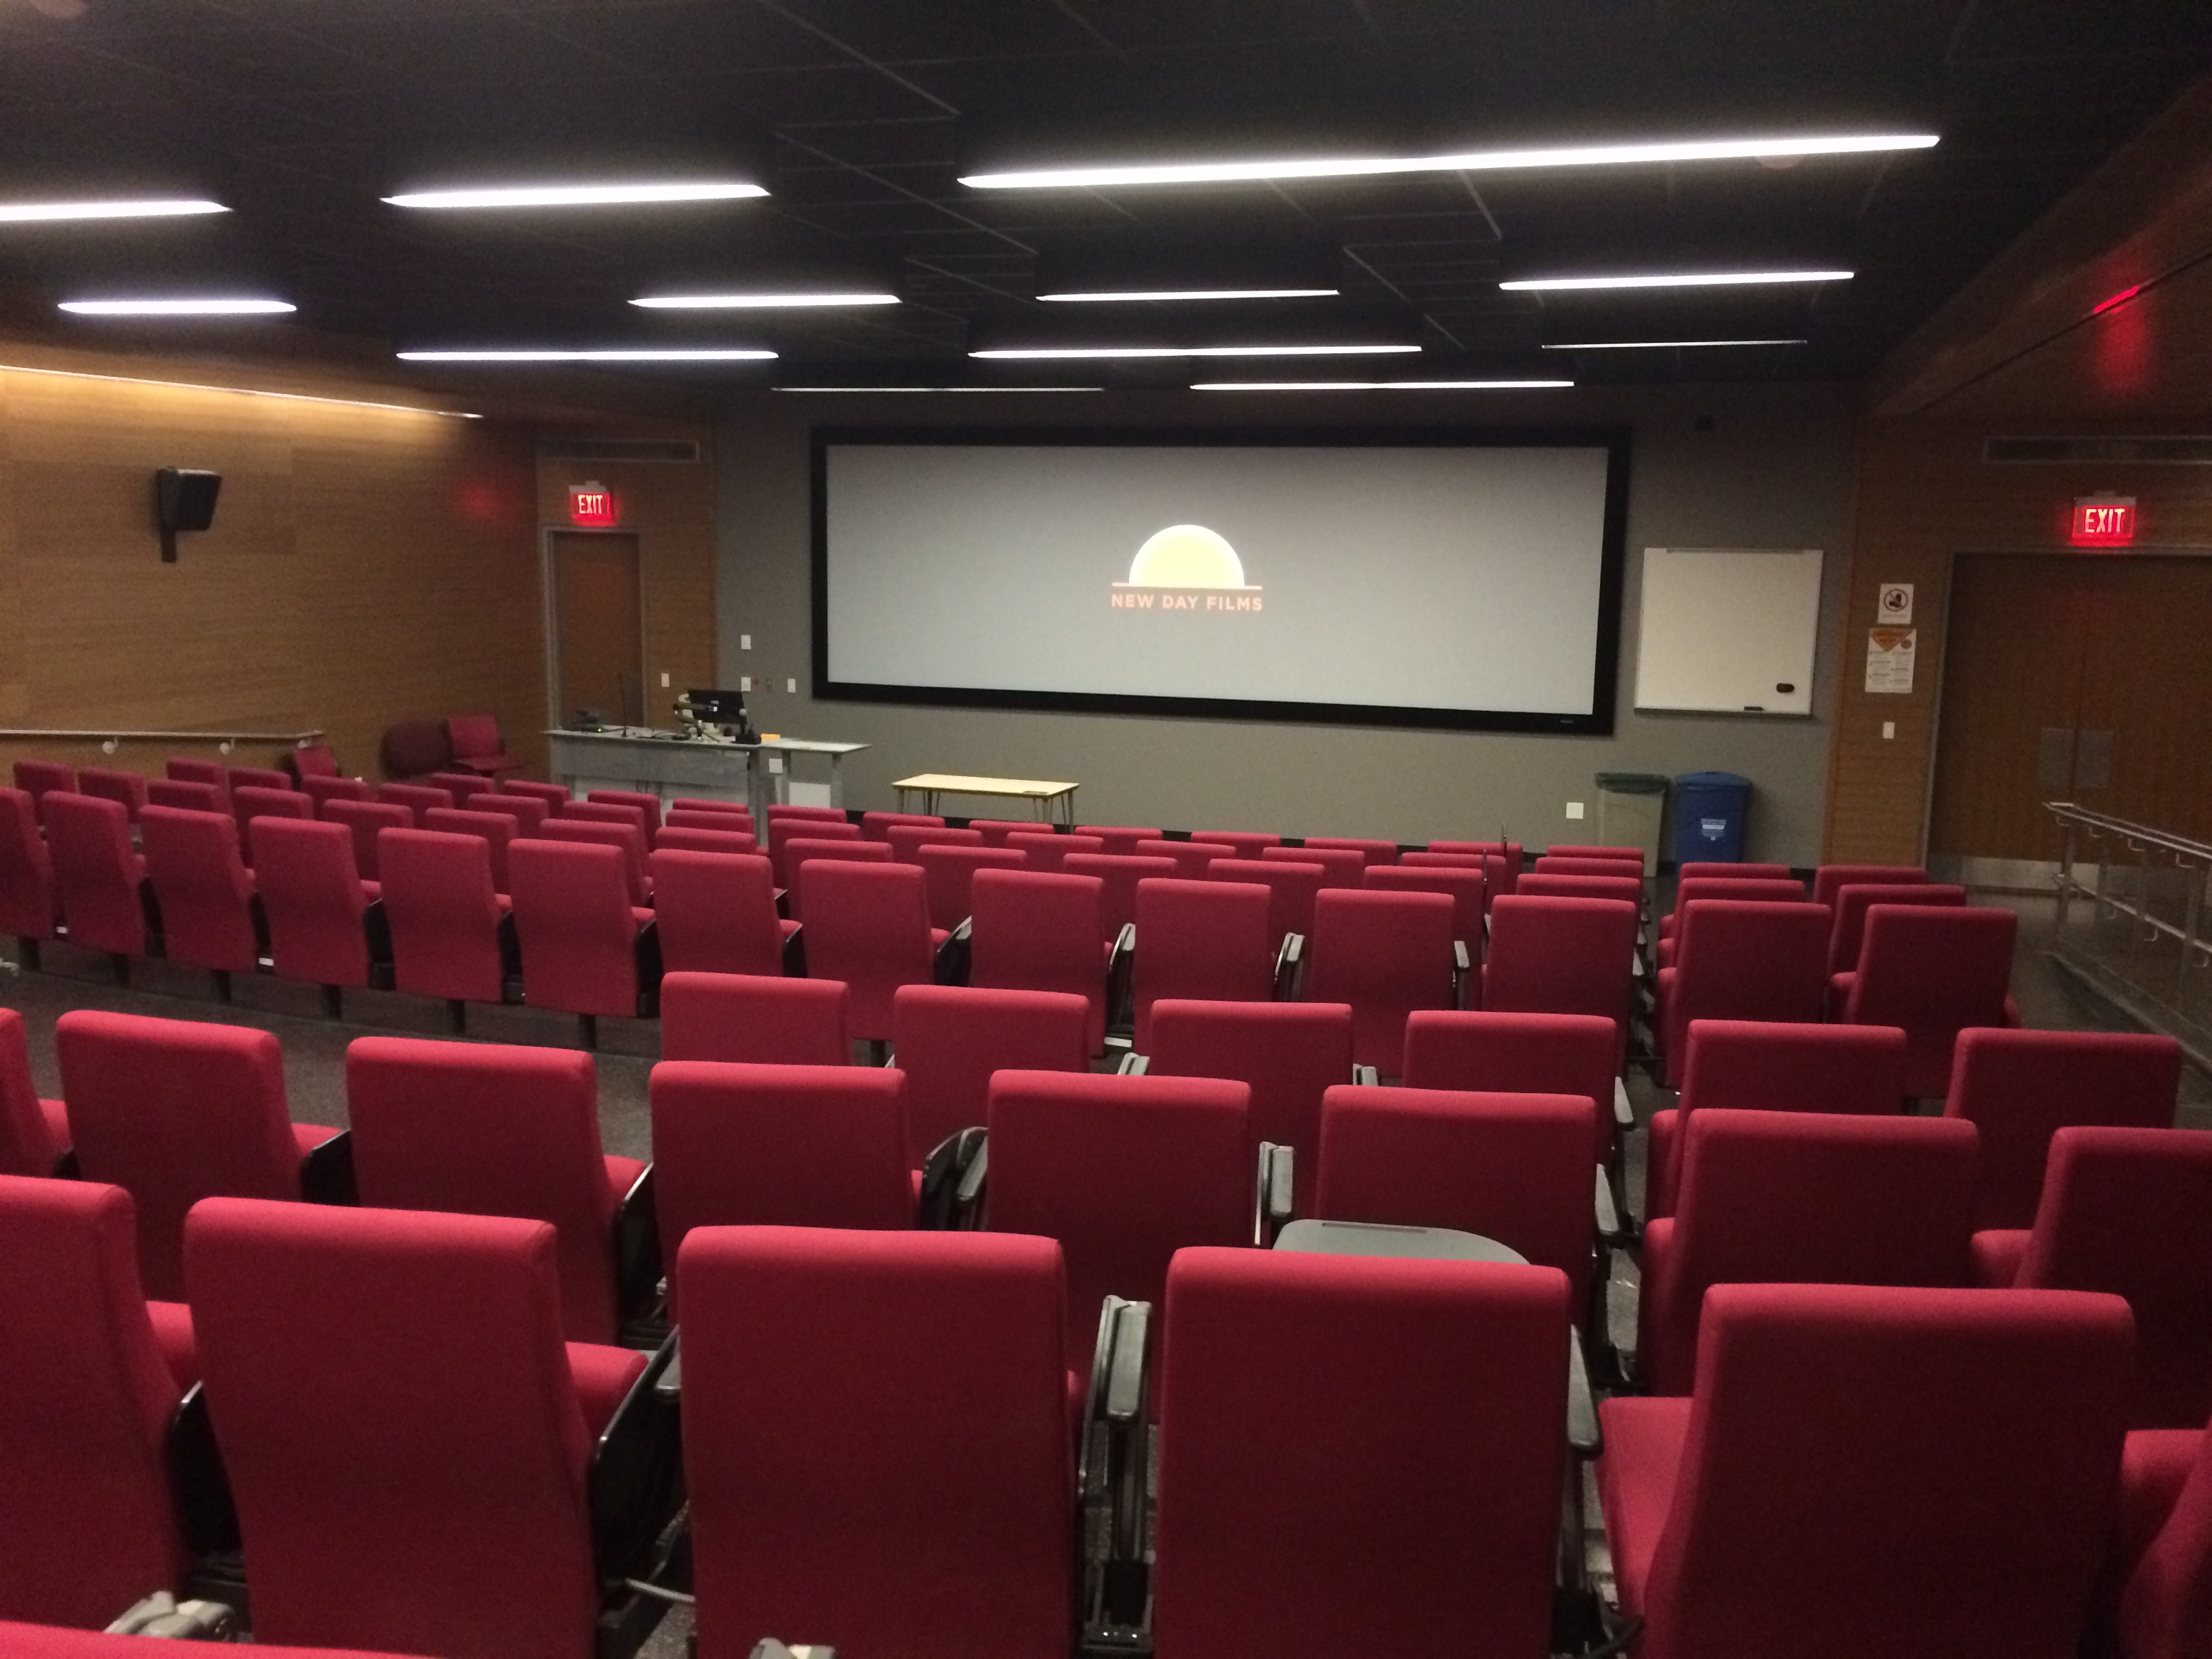 Large empty lecture hall with a screen in front. A sunset is displayed.